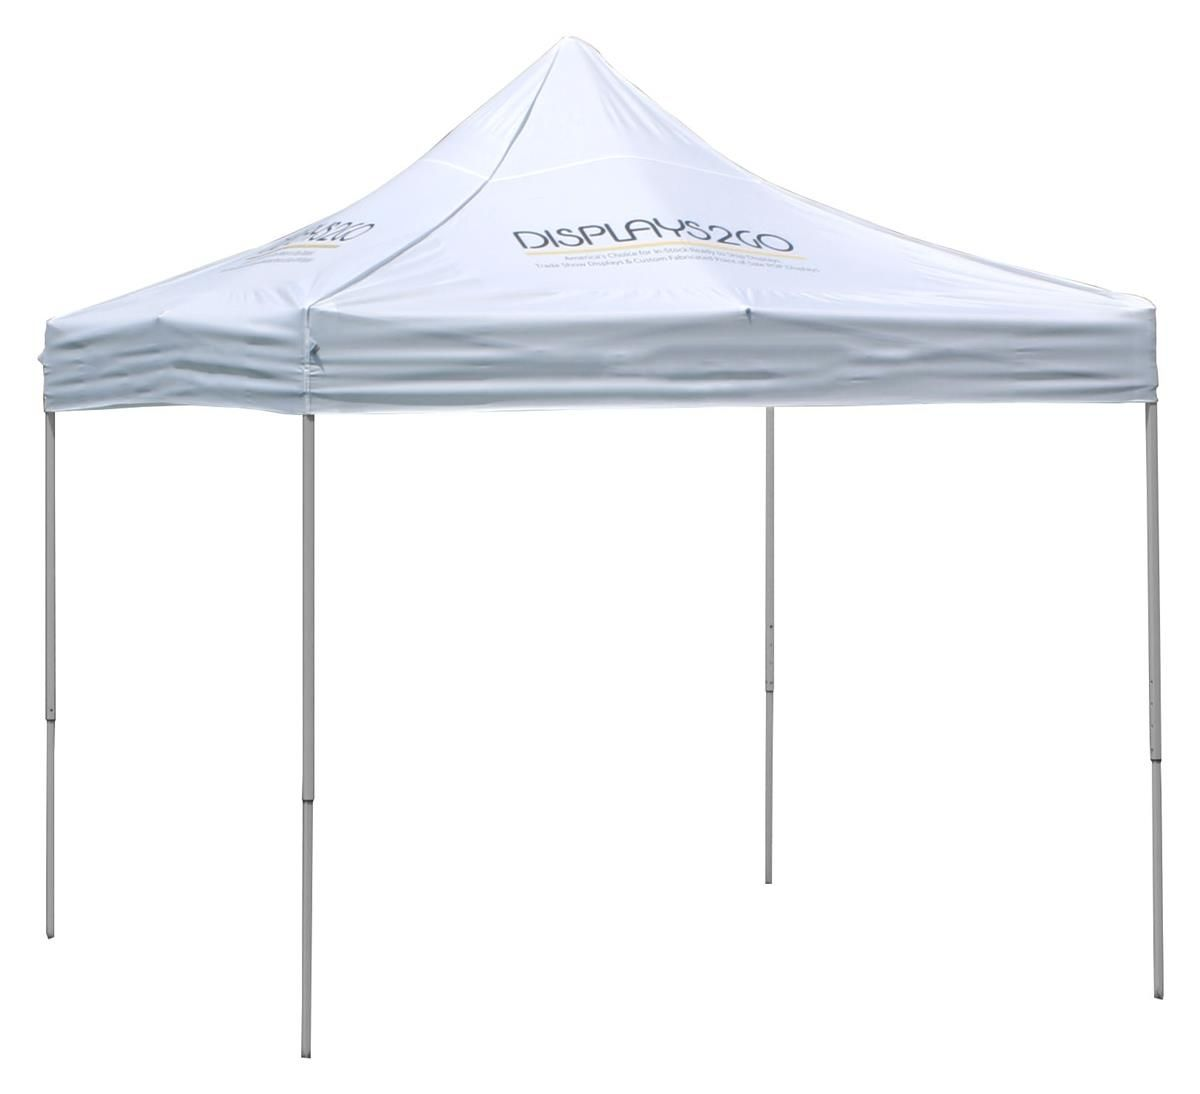 10 X 10 Outdoor Canopy Tent With 4 Custom Imprints Pop Up Square White Canopy Tent Outdoor Canopy Tent Canopy Outdoor